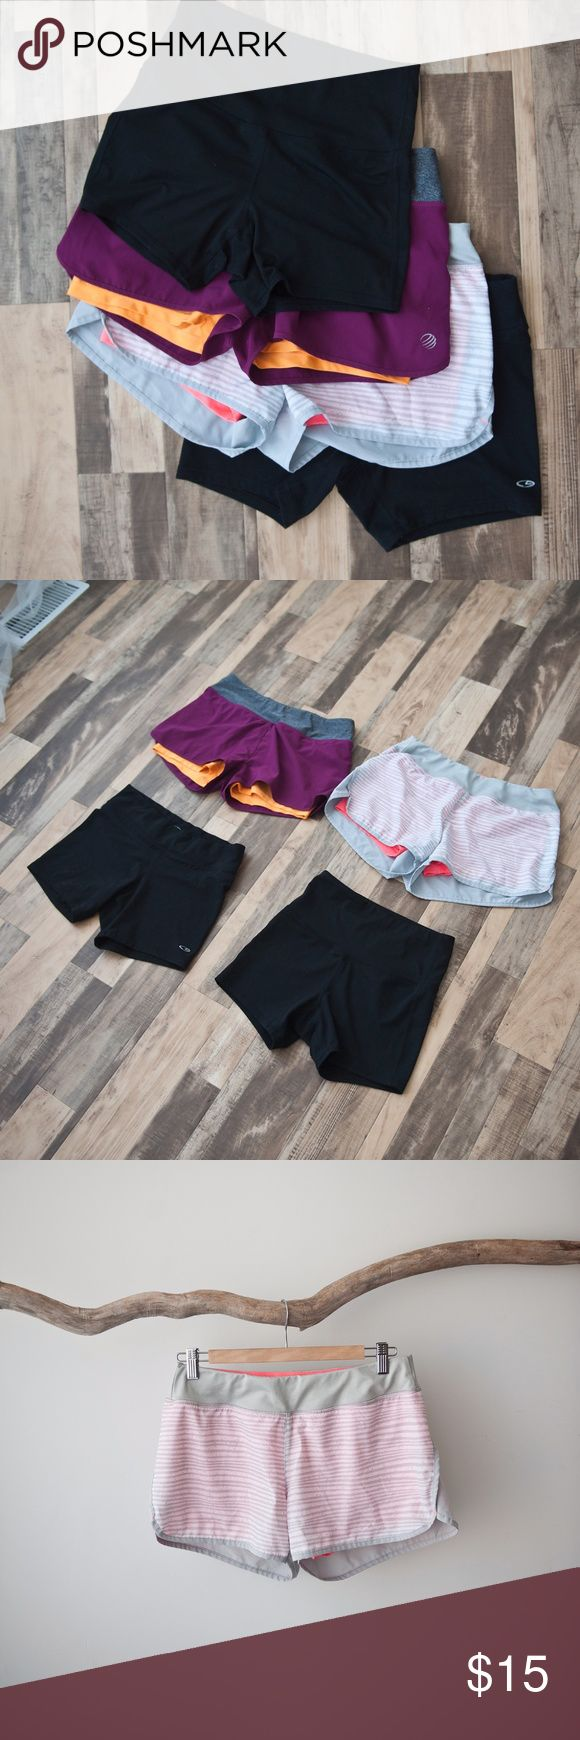 """Women's Athletic Running Shorts Lot of 4 - Light gray shorts Size Medium      *Hip to hip approx 14""""      *Rise approx 9 1/2""""      *Inseam approx 3""""  - Dark Purple Shorts Medium      *Hip to hip approx 14 1/4""""      *Rise approx 9 1/4""""      *Inseam approx 2""""  - Wide Band Spandex Shorts Large      *Hip to hip approx 12""""      *Rise approx 10""""      *Inseam approx 4 1/2""""  - Narrow Band Spandex Shorts Large      *Hip to hip approx 14""""      *Rise approx 8"""" Champion Shorts"""